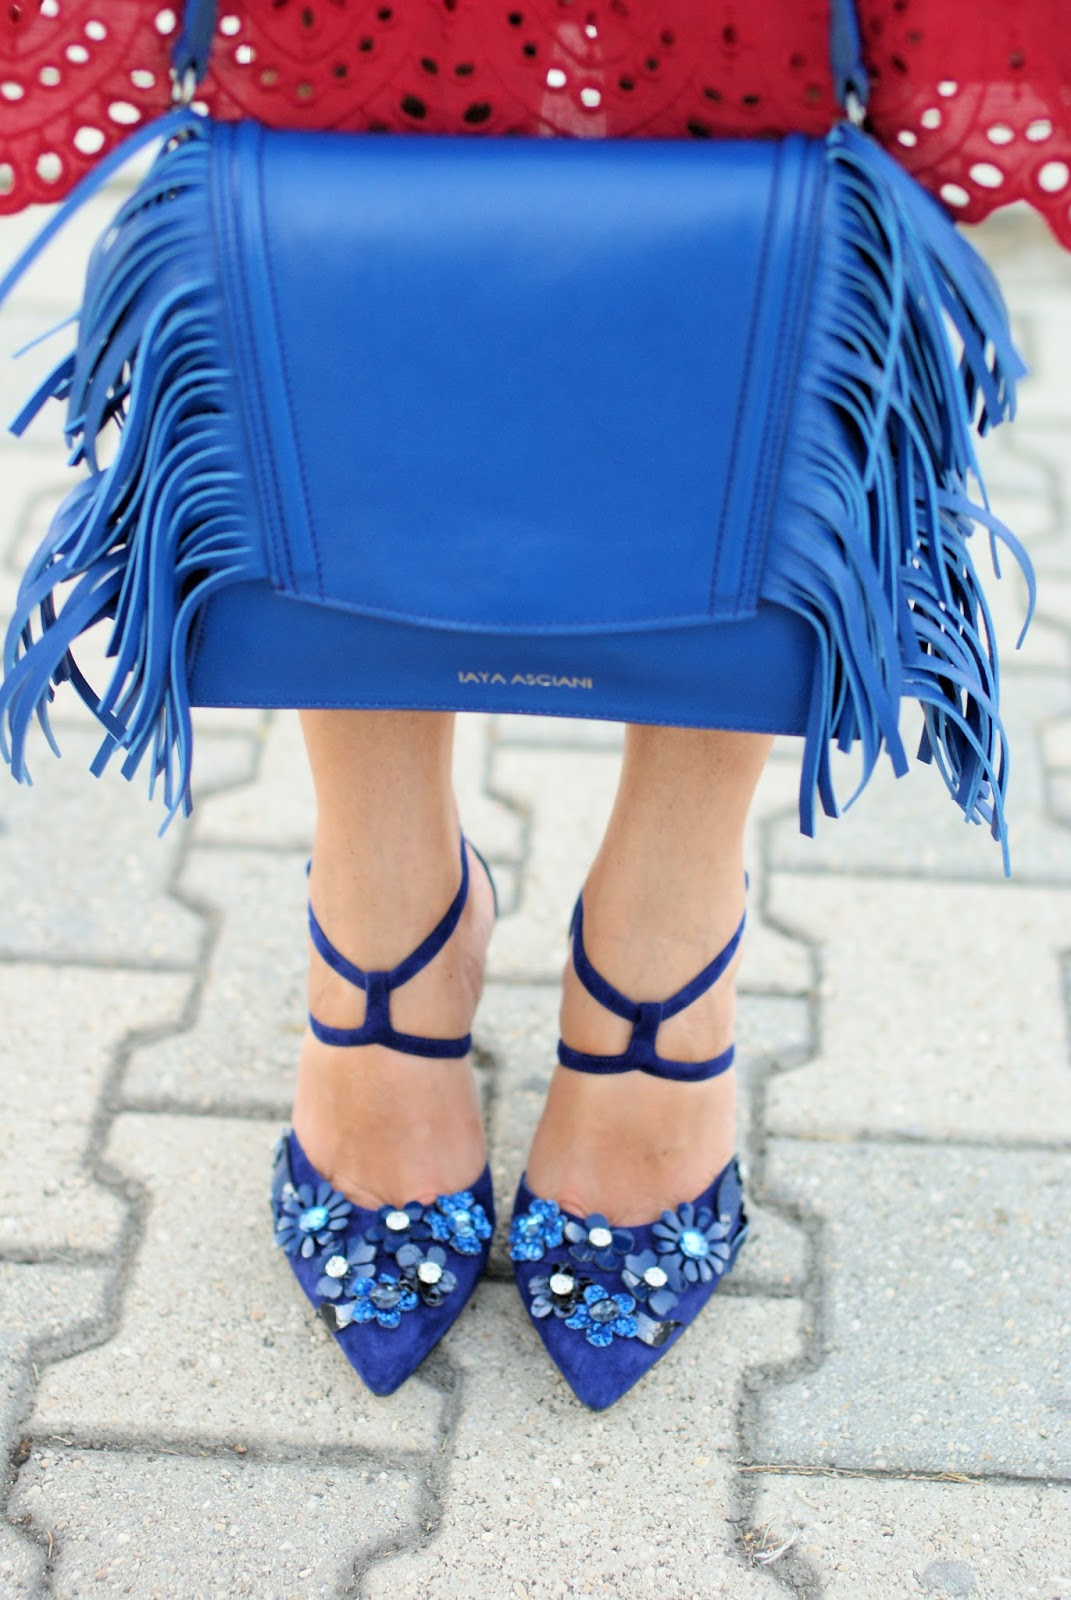 Giancarlo Paoli shoes and Iaya Asciani clutch on Fashion and Cookies fashion blog, fashion blogger style